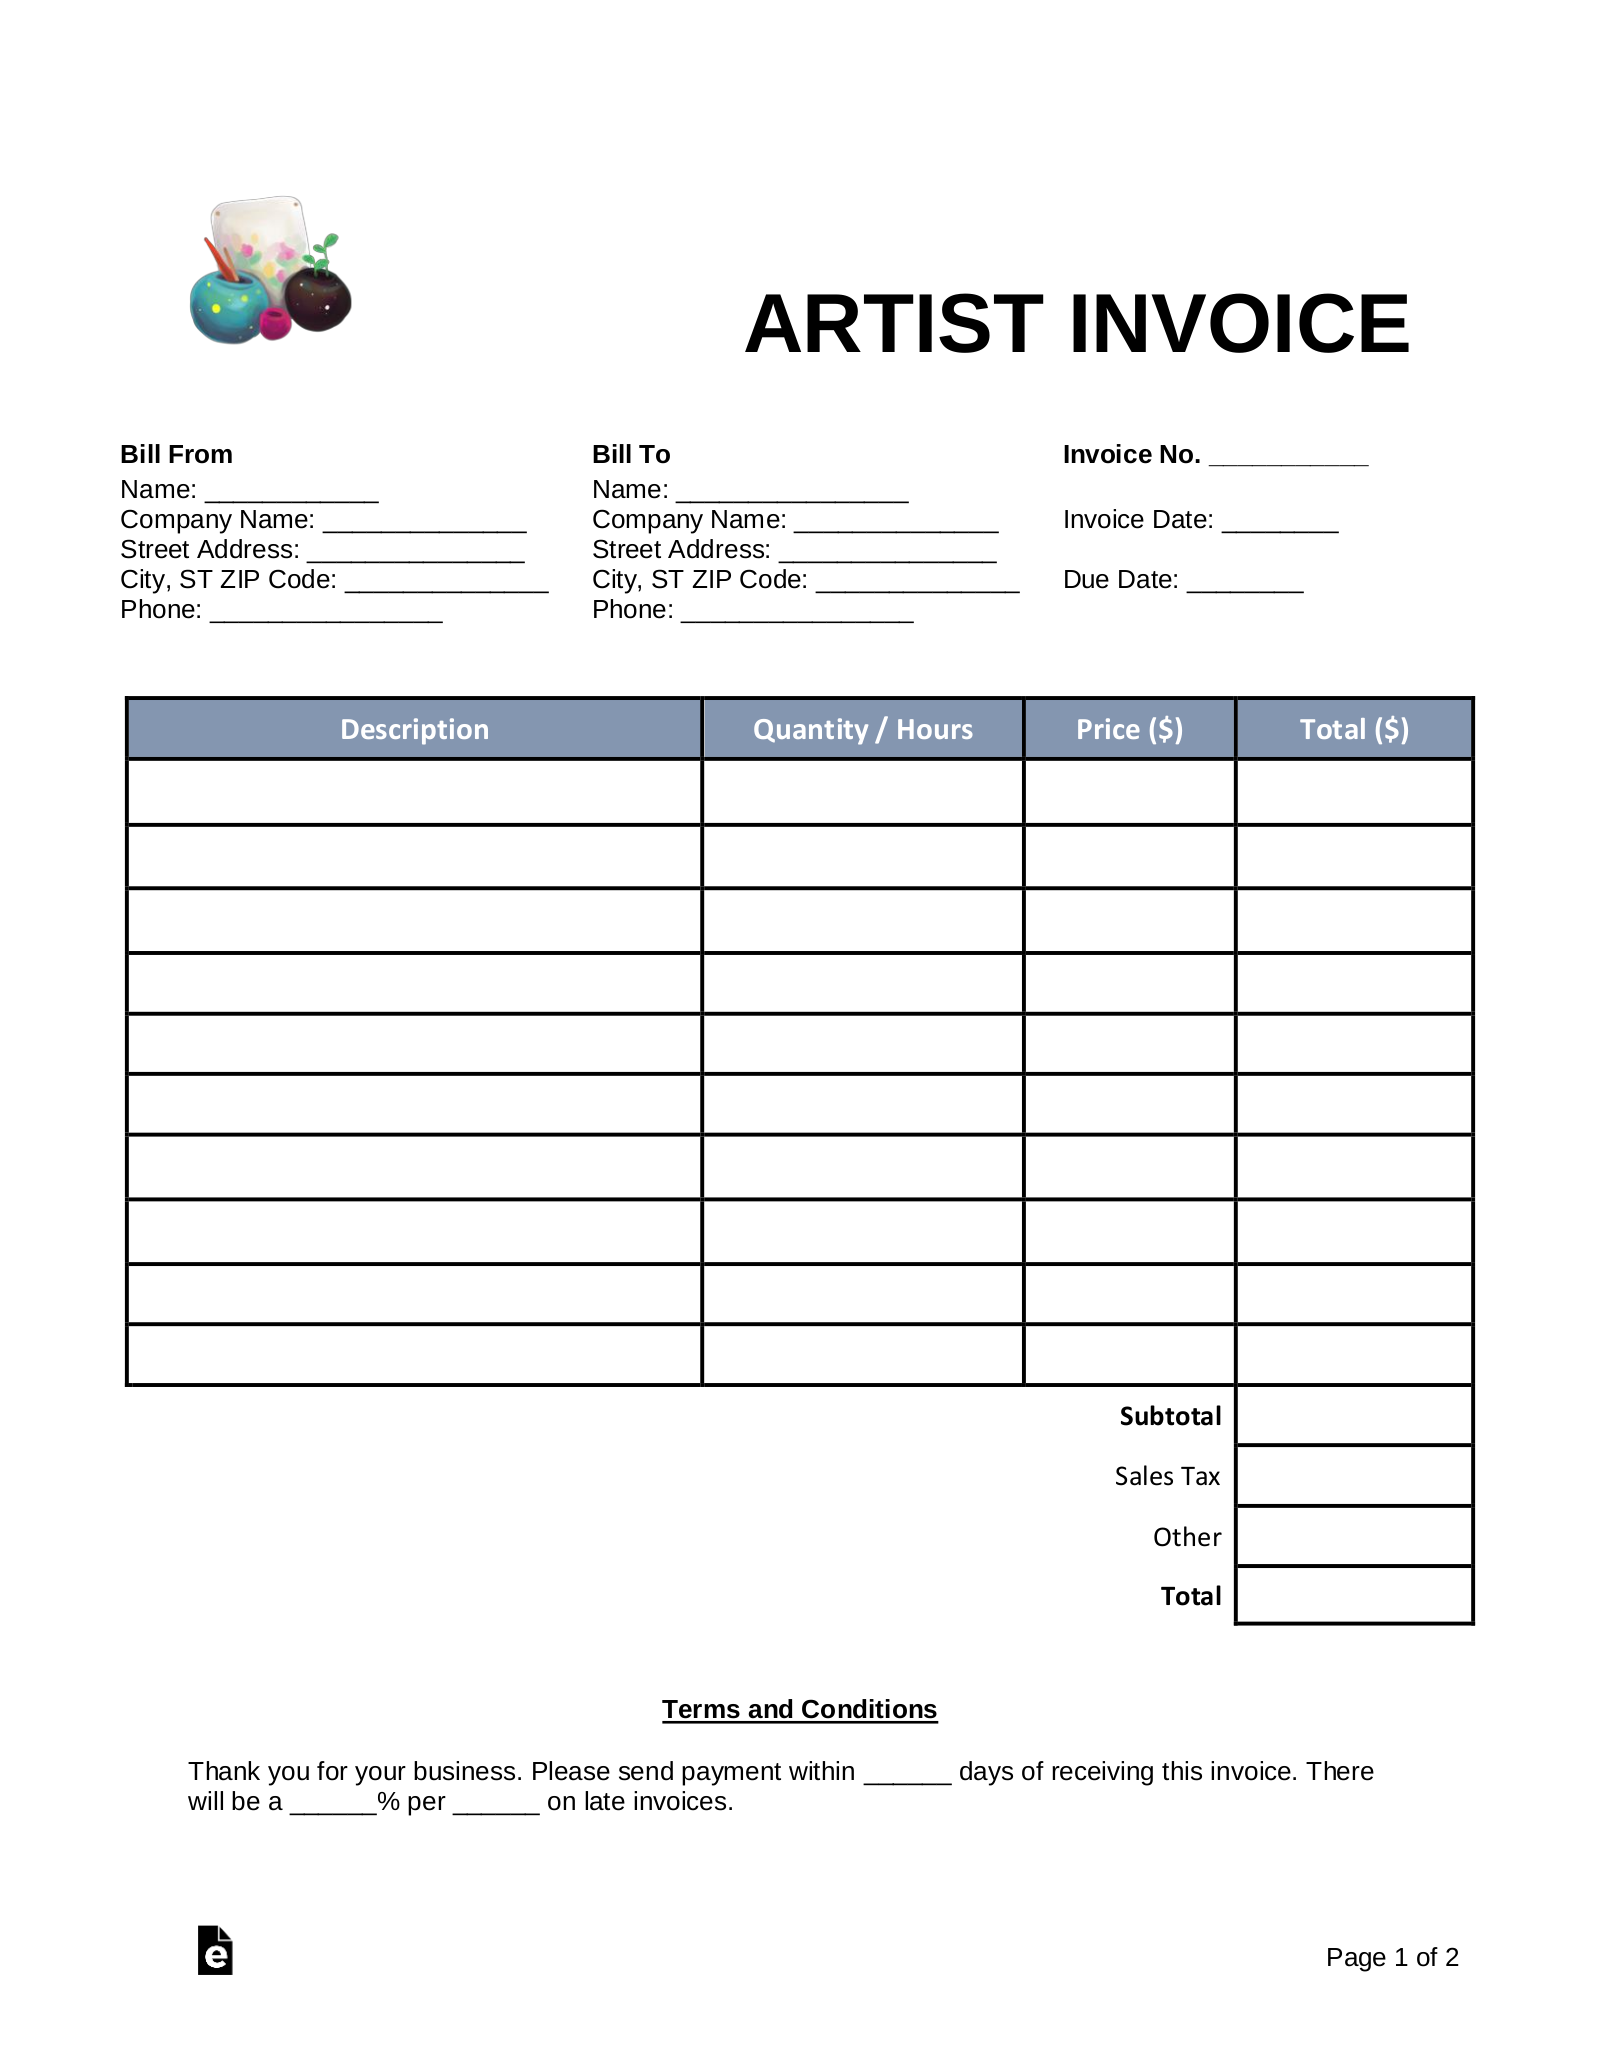 Free Artist Invoice Template - Word | PDF | eForms - Free ...